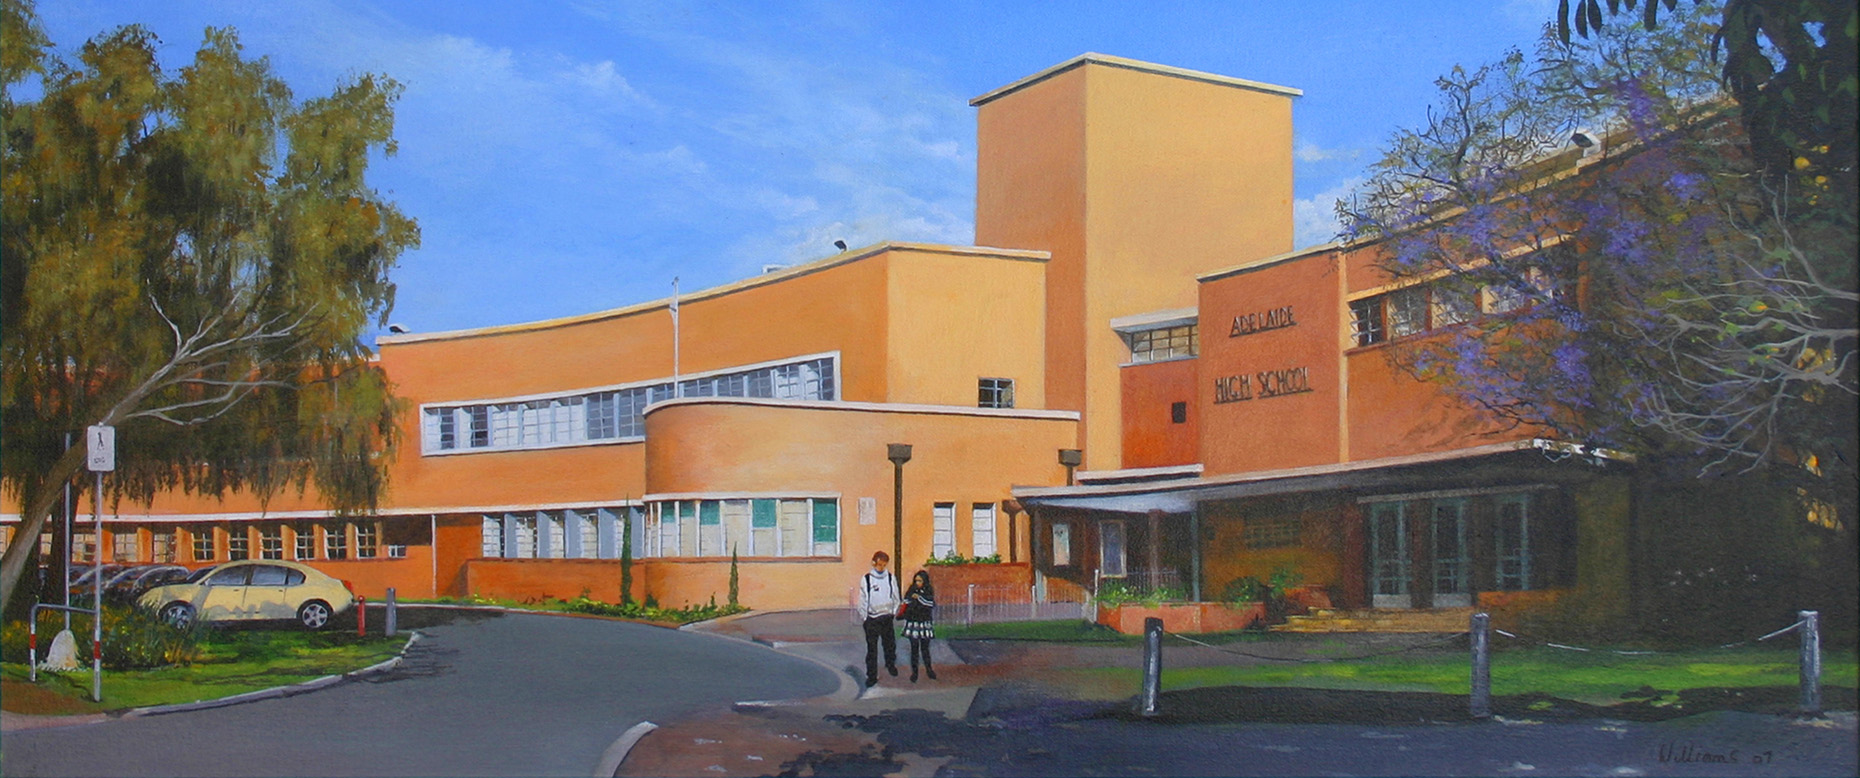 Painting of Adelaide High School with 2 students standing in the foreground.